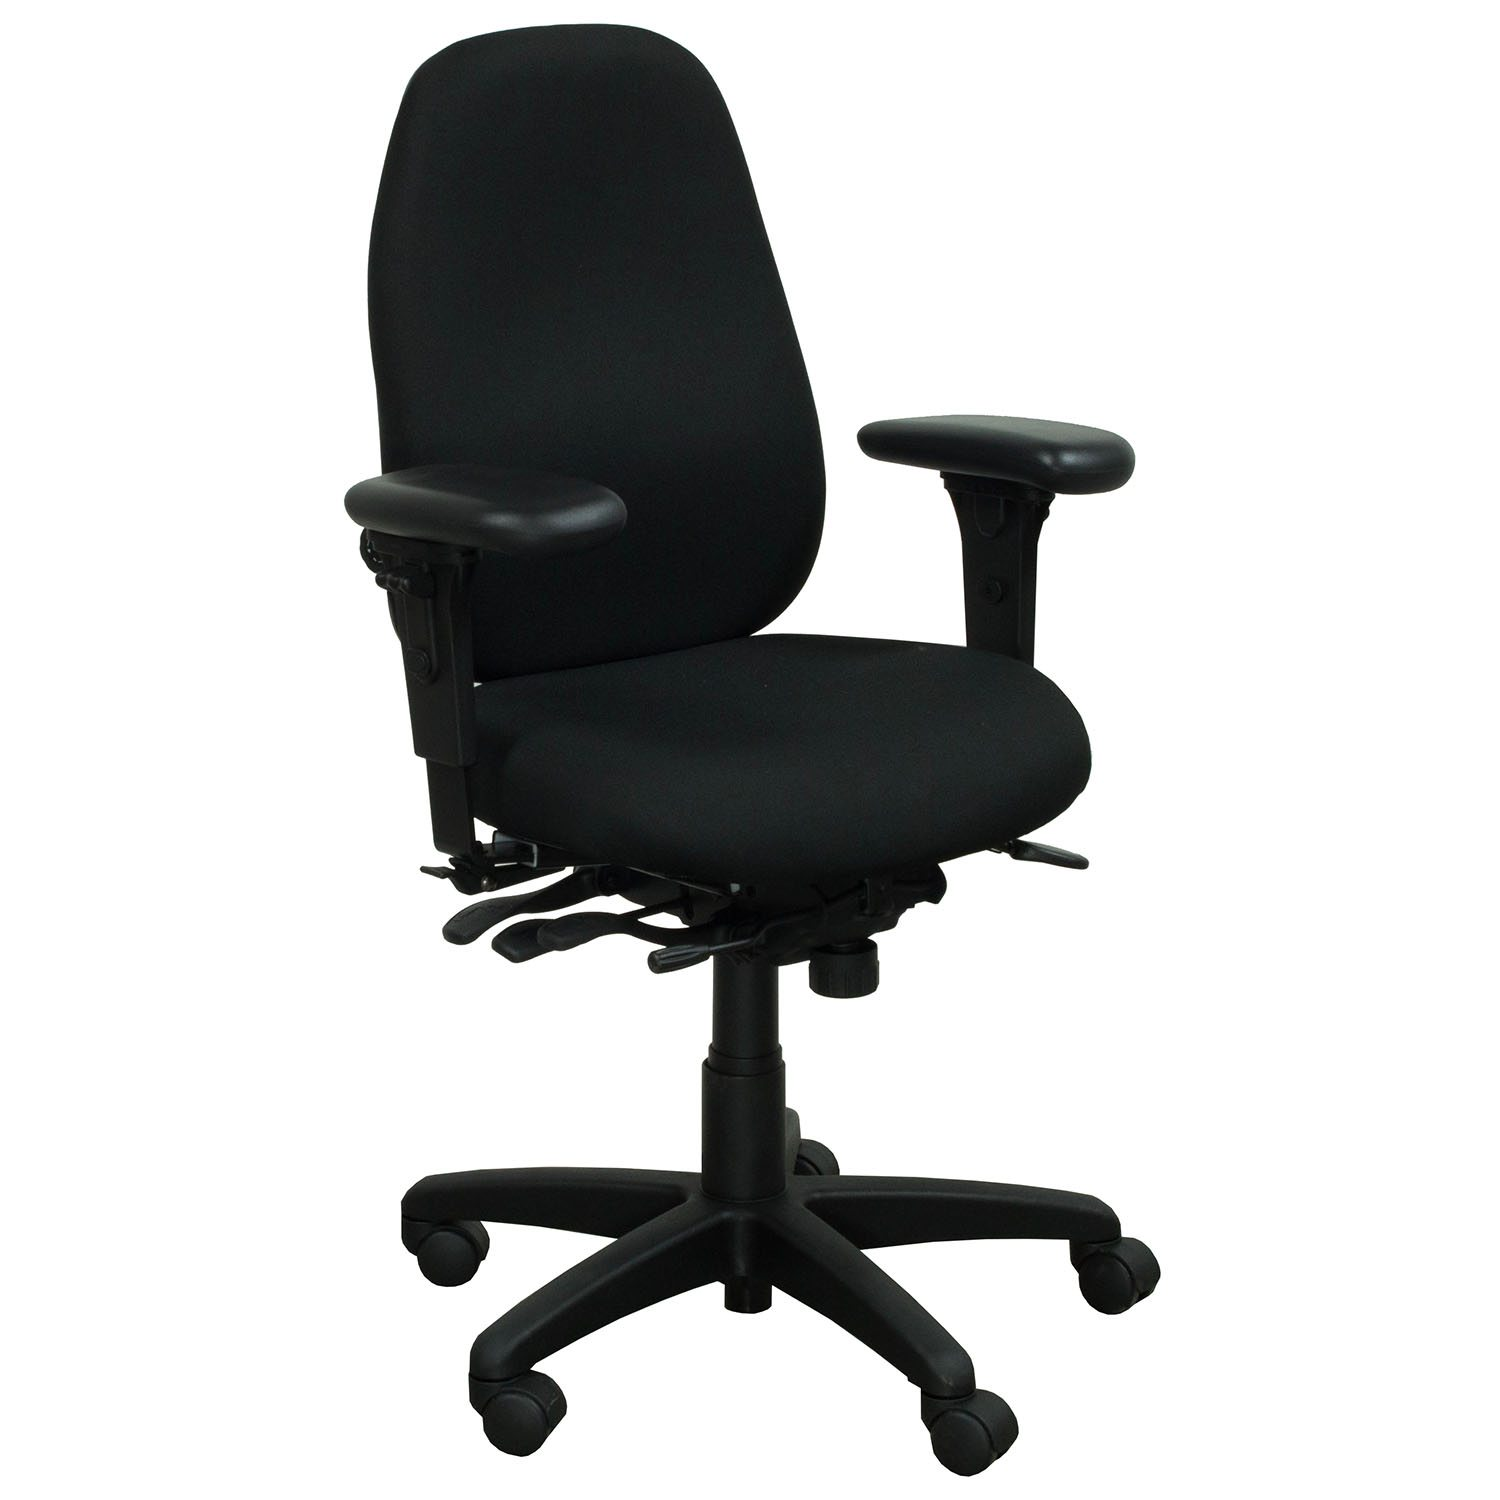 Office Master PT69 Used Task Chair ...  sc 1 st  National Office Interiors and Liquidators & Office Master PT69 Used Task Chair Black | National Office ...